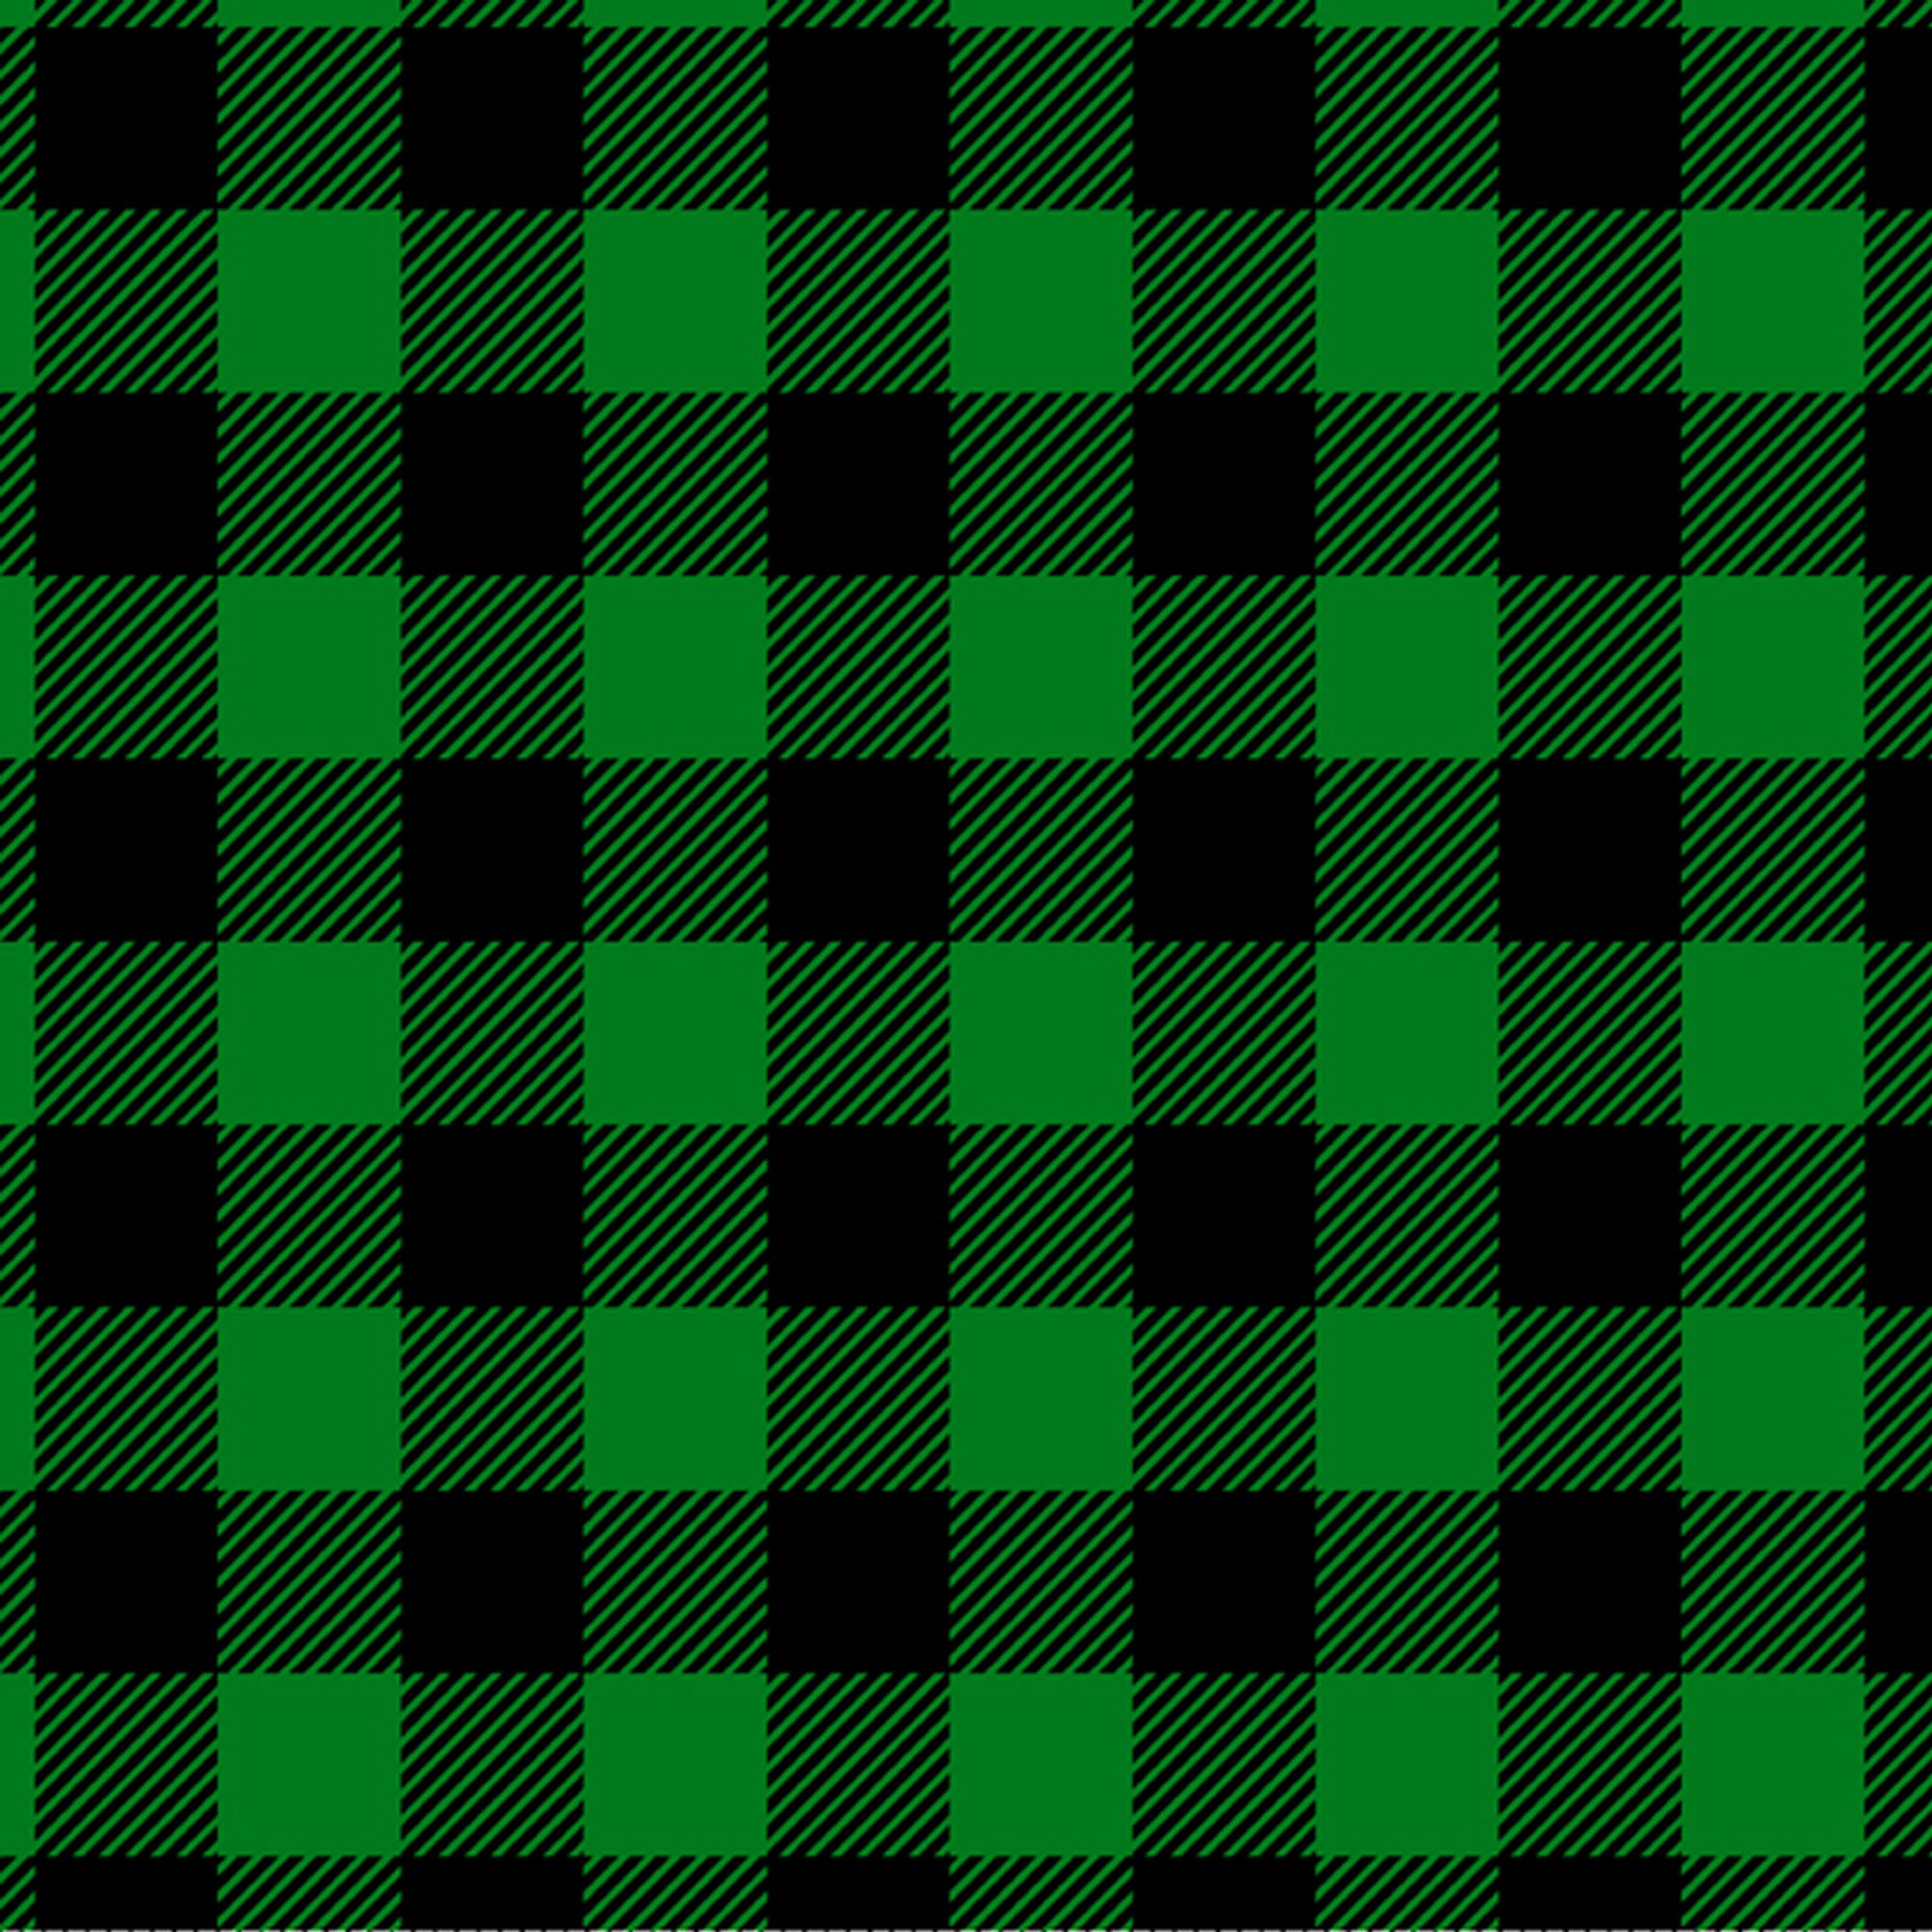 David Textiles Flannel Precut Fabric Buffalo Plaid 1.5 Yds X 42 Inches